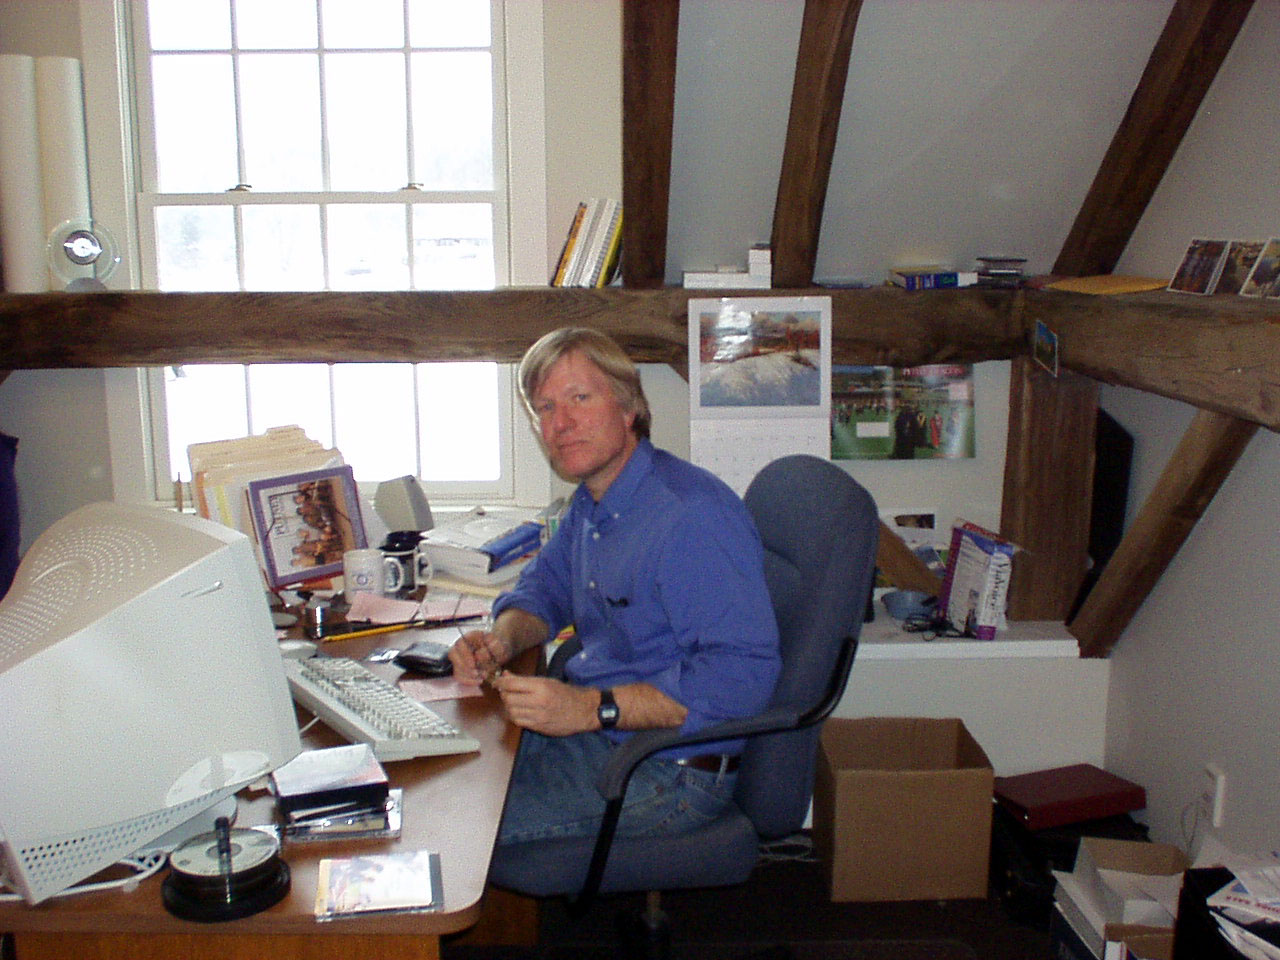 Jim at his desk.  Circa 2002.  Look at that dinosaur of a computer!